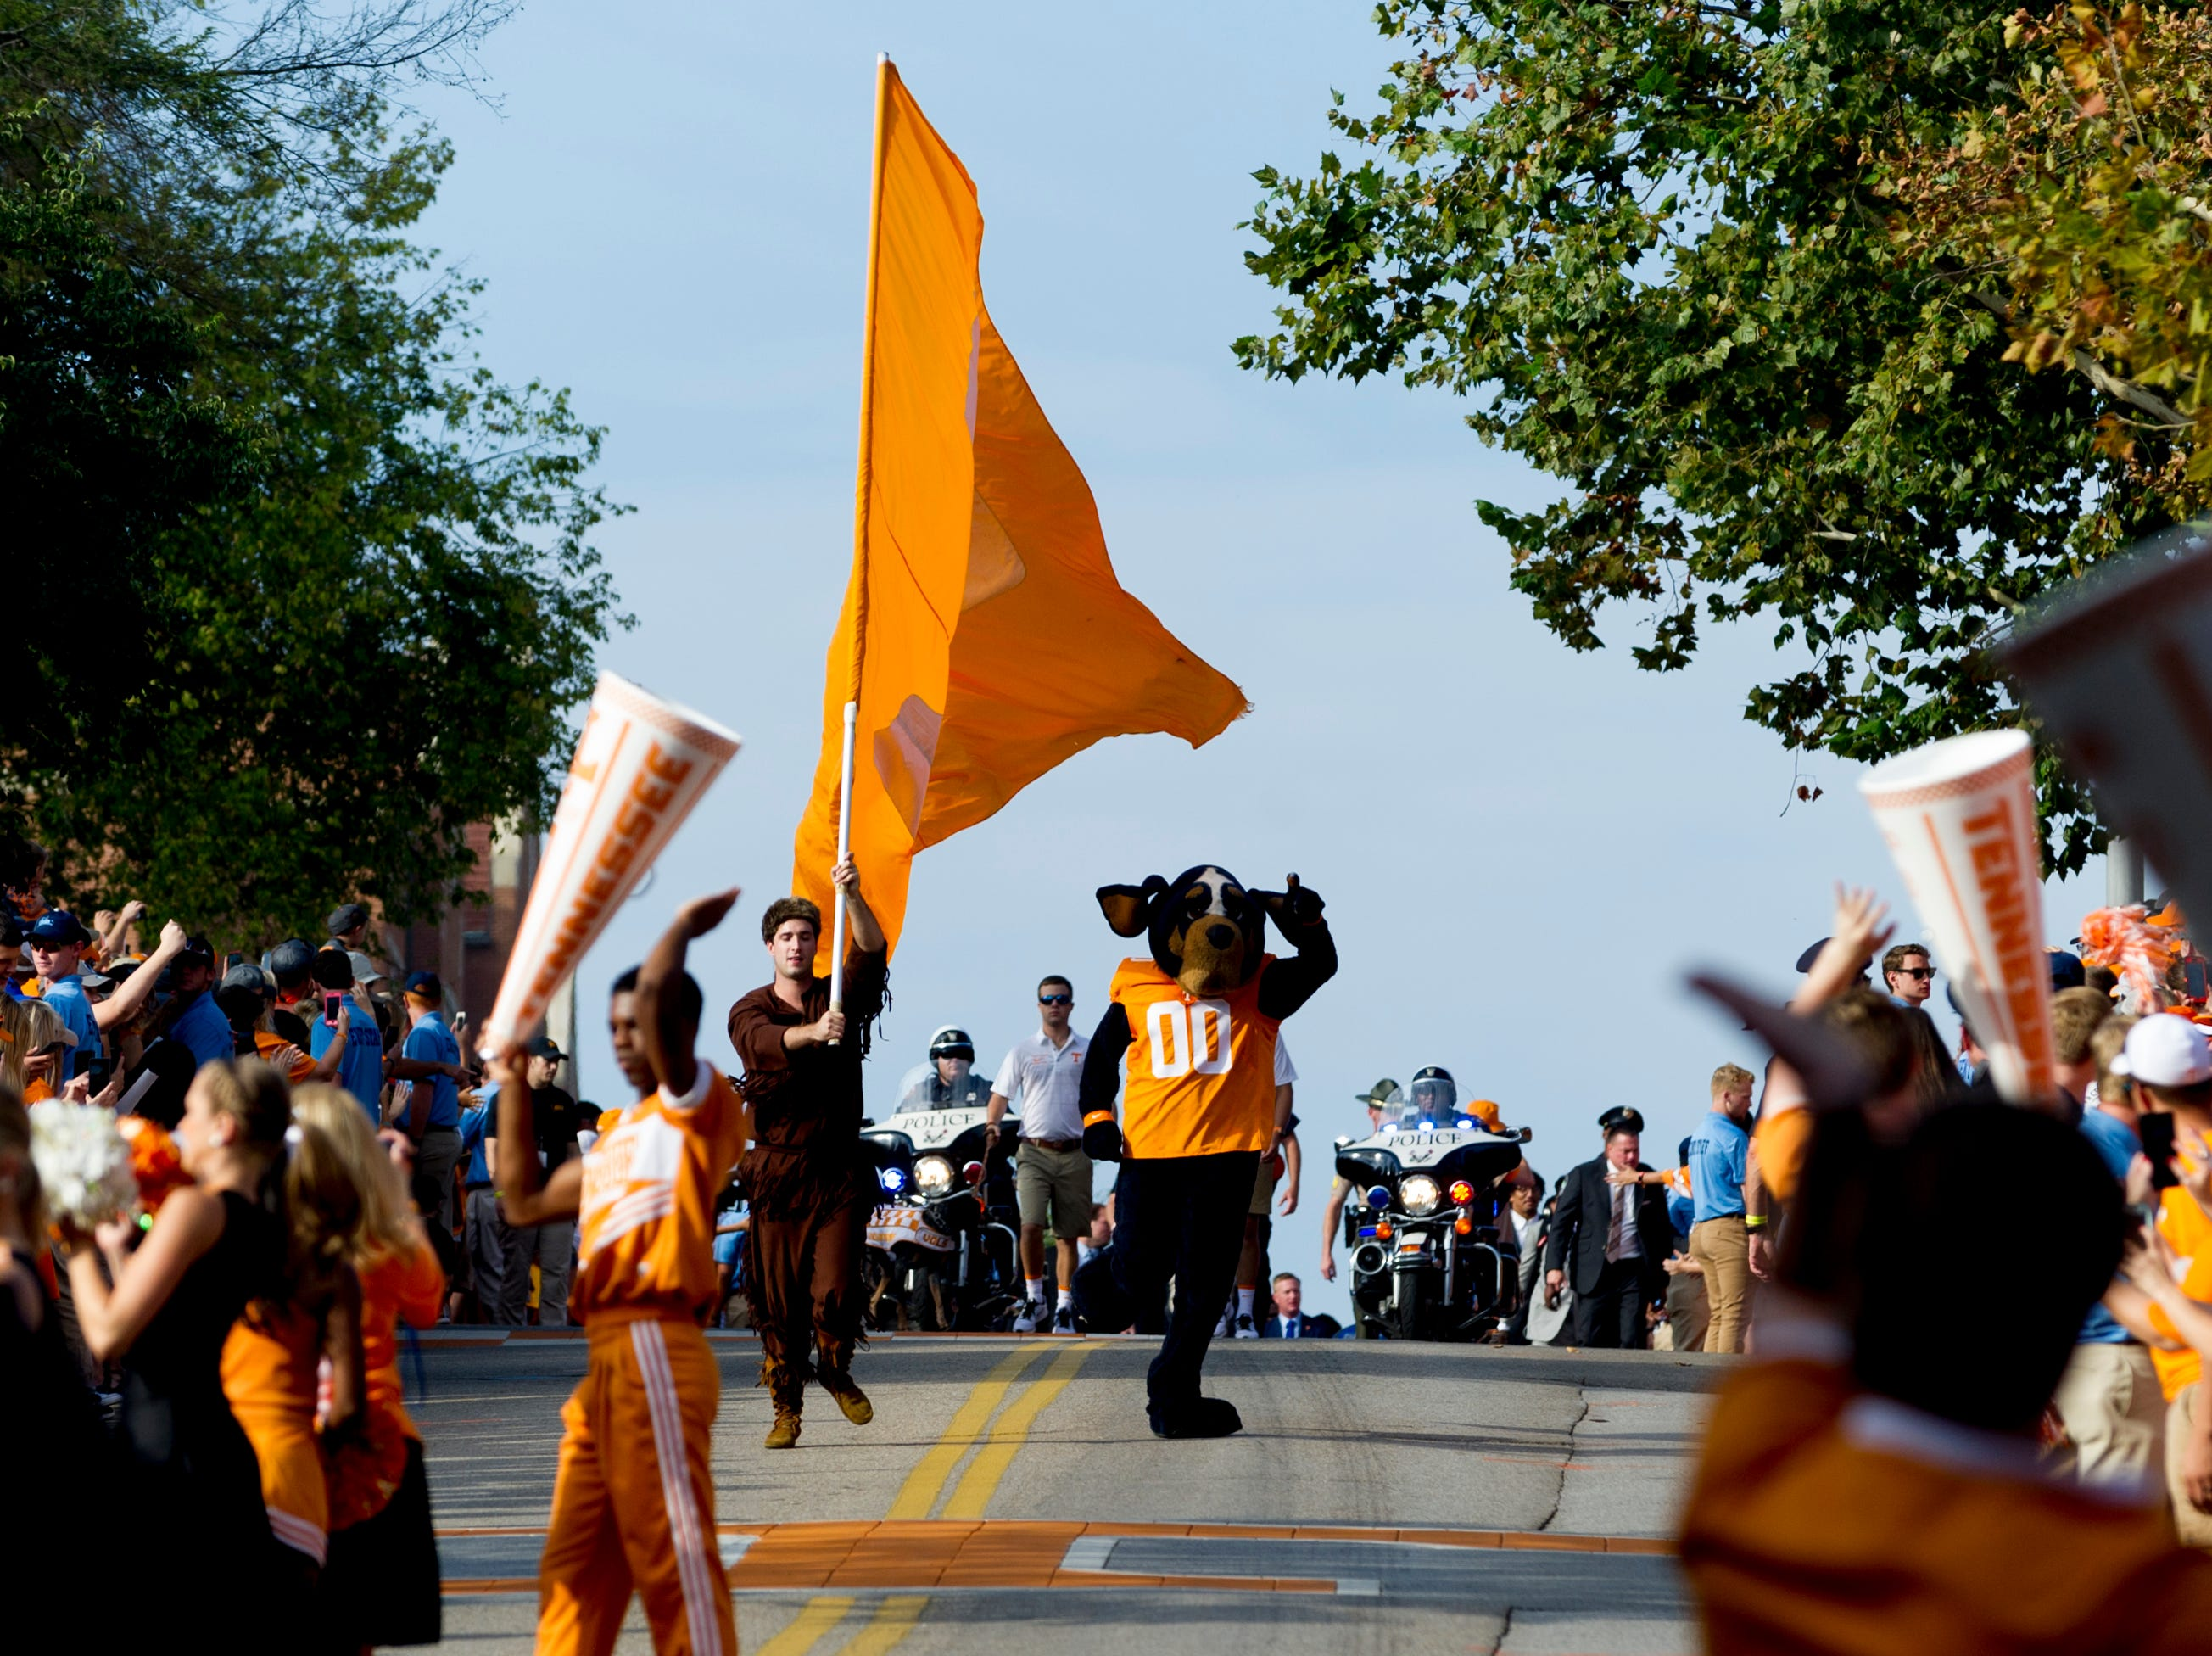 Smokey the mascot begins the Vol Walk during the Tennessee Volunteers vs. UMass Minutemen game at Neyland Stadium in Knoxville, Tennessee on Saturday, September 23, 2017.